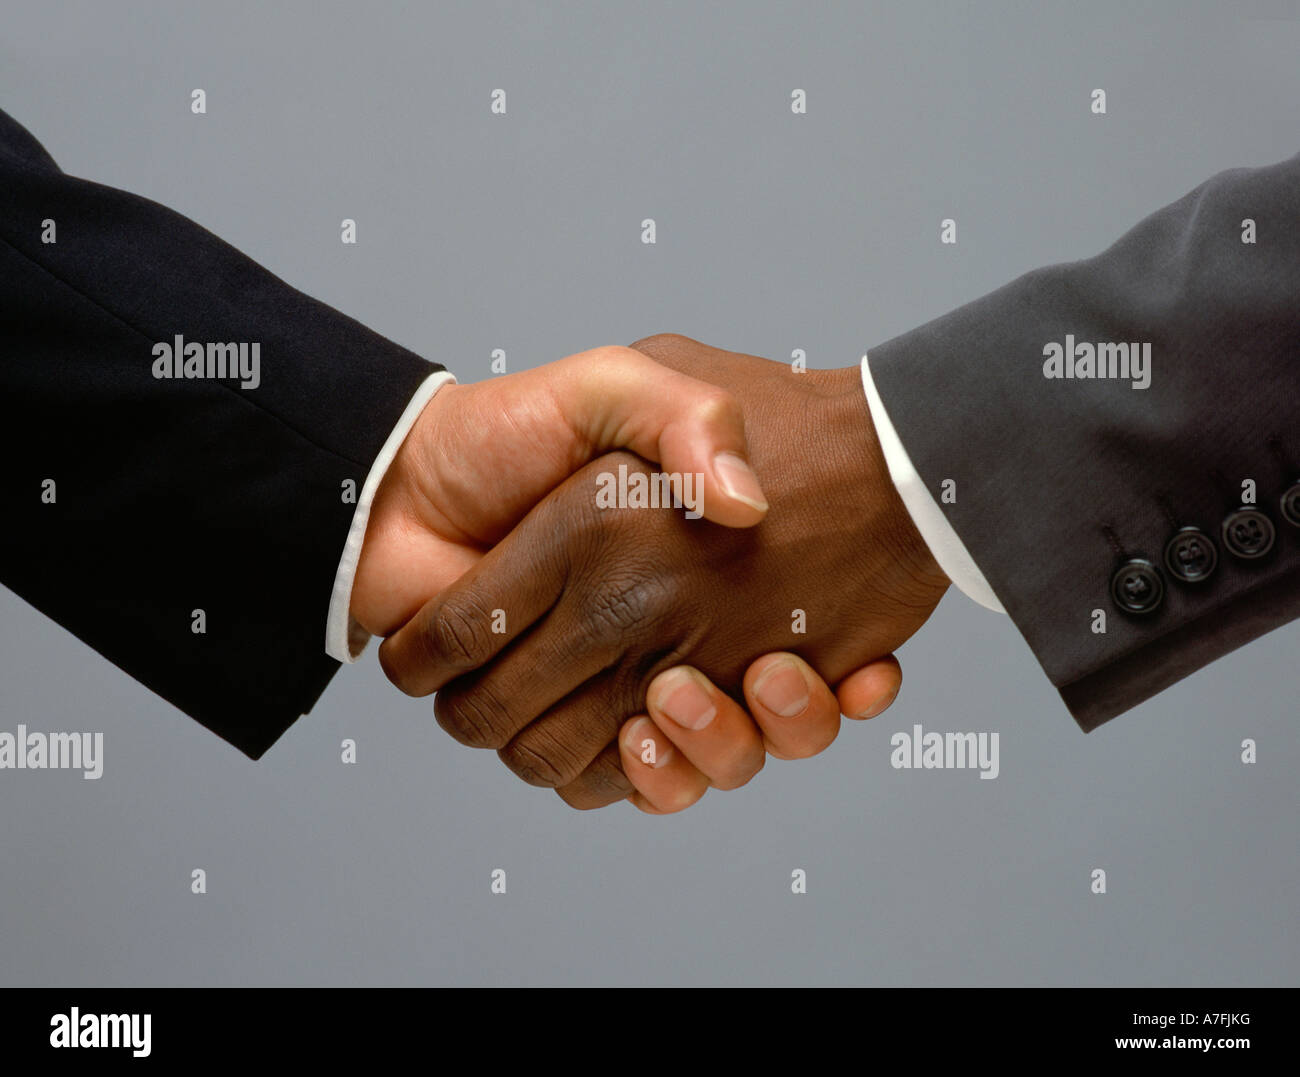 hands, Male hands shaking, friendship, bonding, cutout, cut out - Stock Image